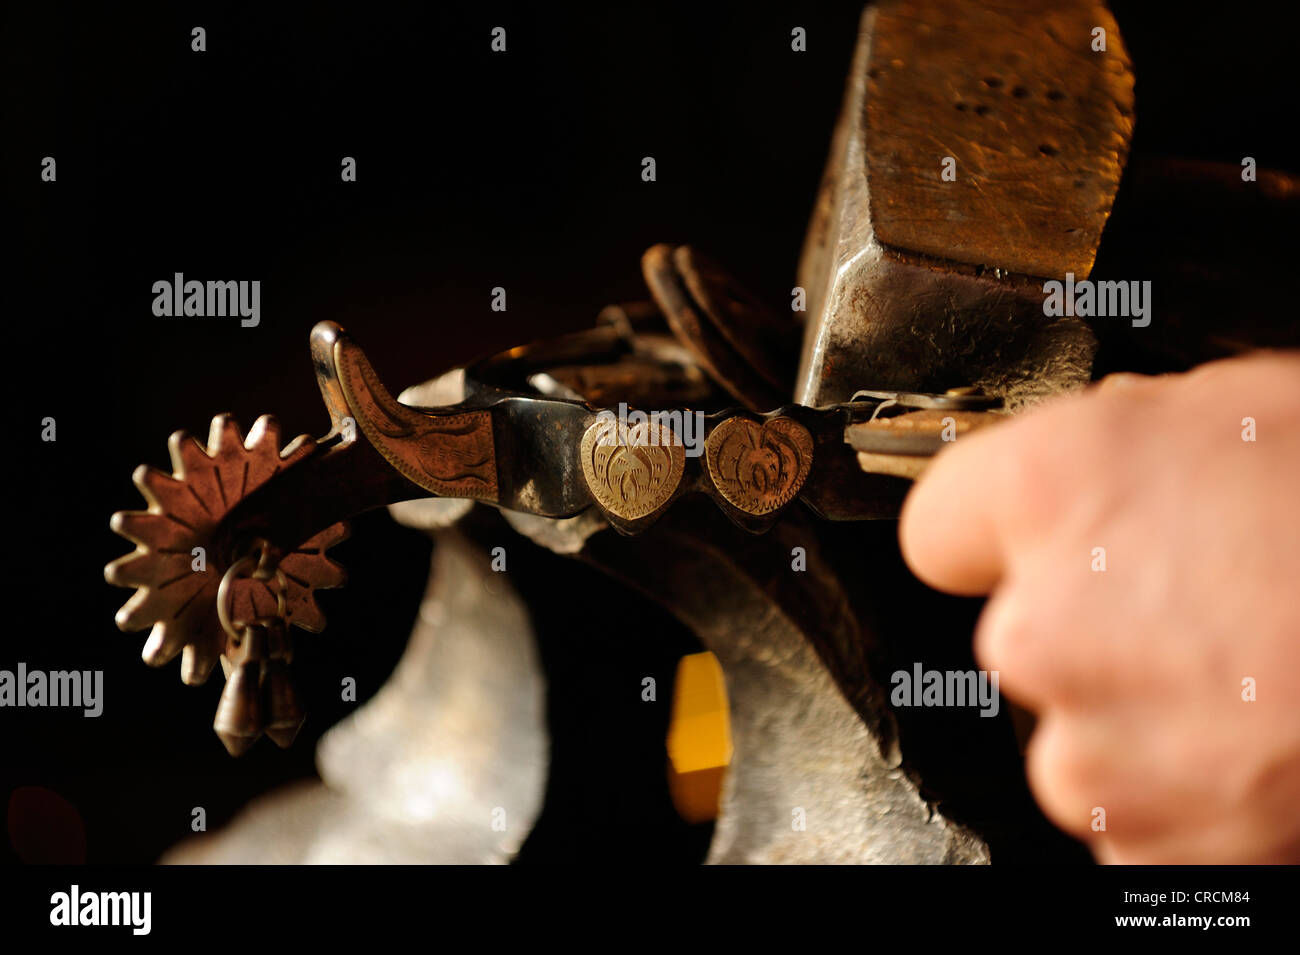 Spurs on cowboy boots being clamped in a vice and straightened with a hammer - Stock Image